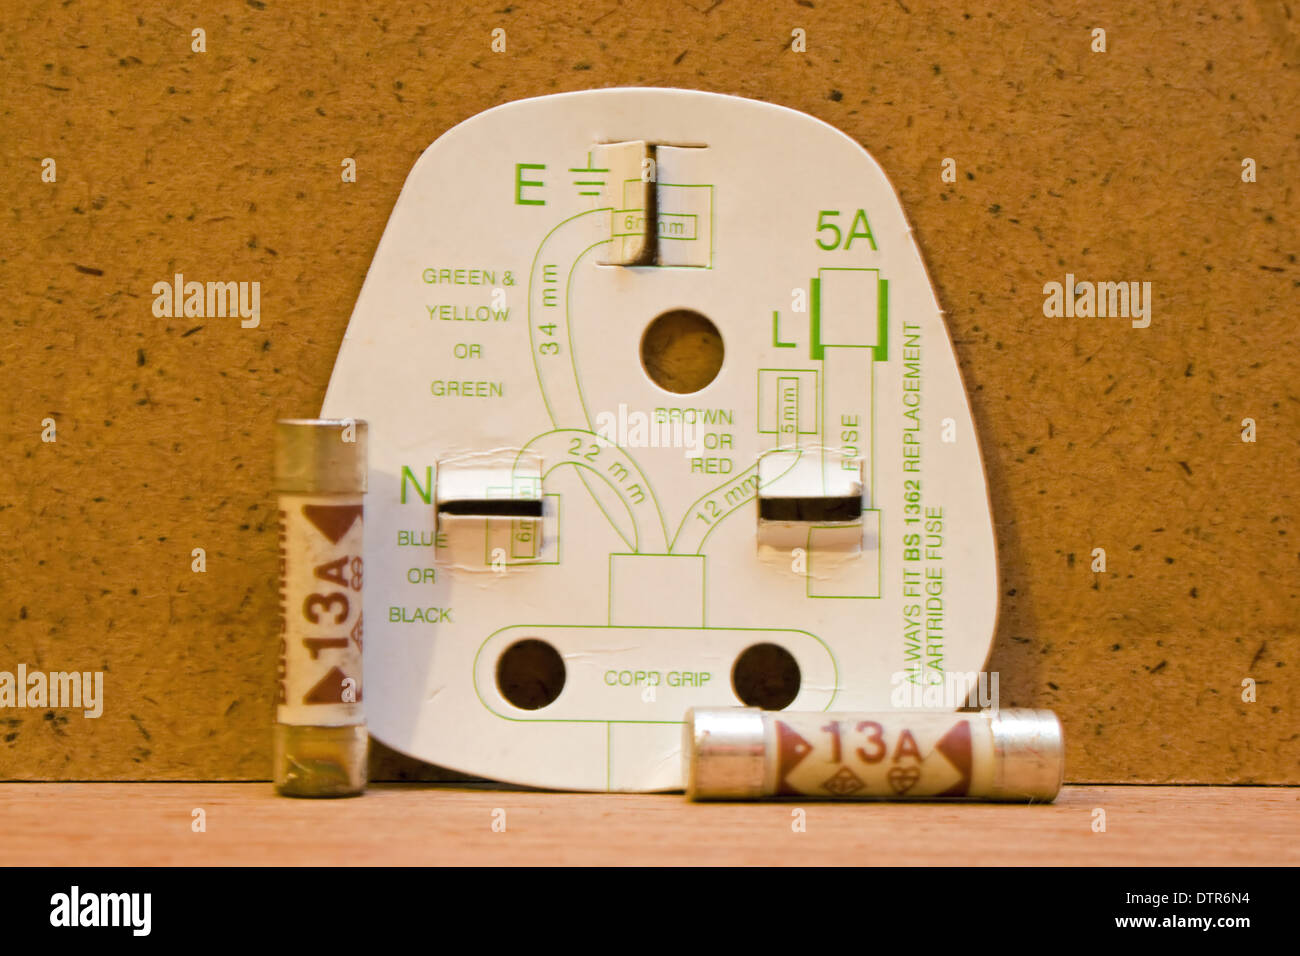 uk three pin plug wiring diagram with 13amp fuses DTR6N4 uk three pin plug wiring diagram with 13amp fuses stock photo 7 pin wiring diagram at bayanpartner.co